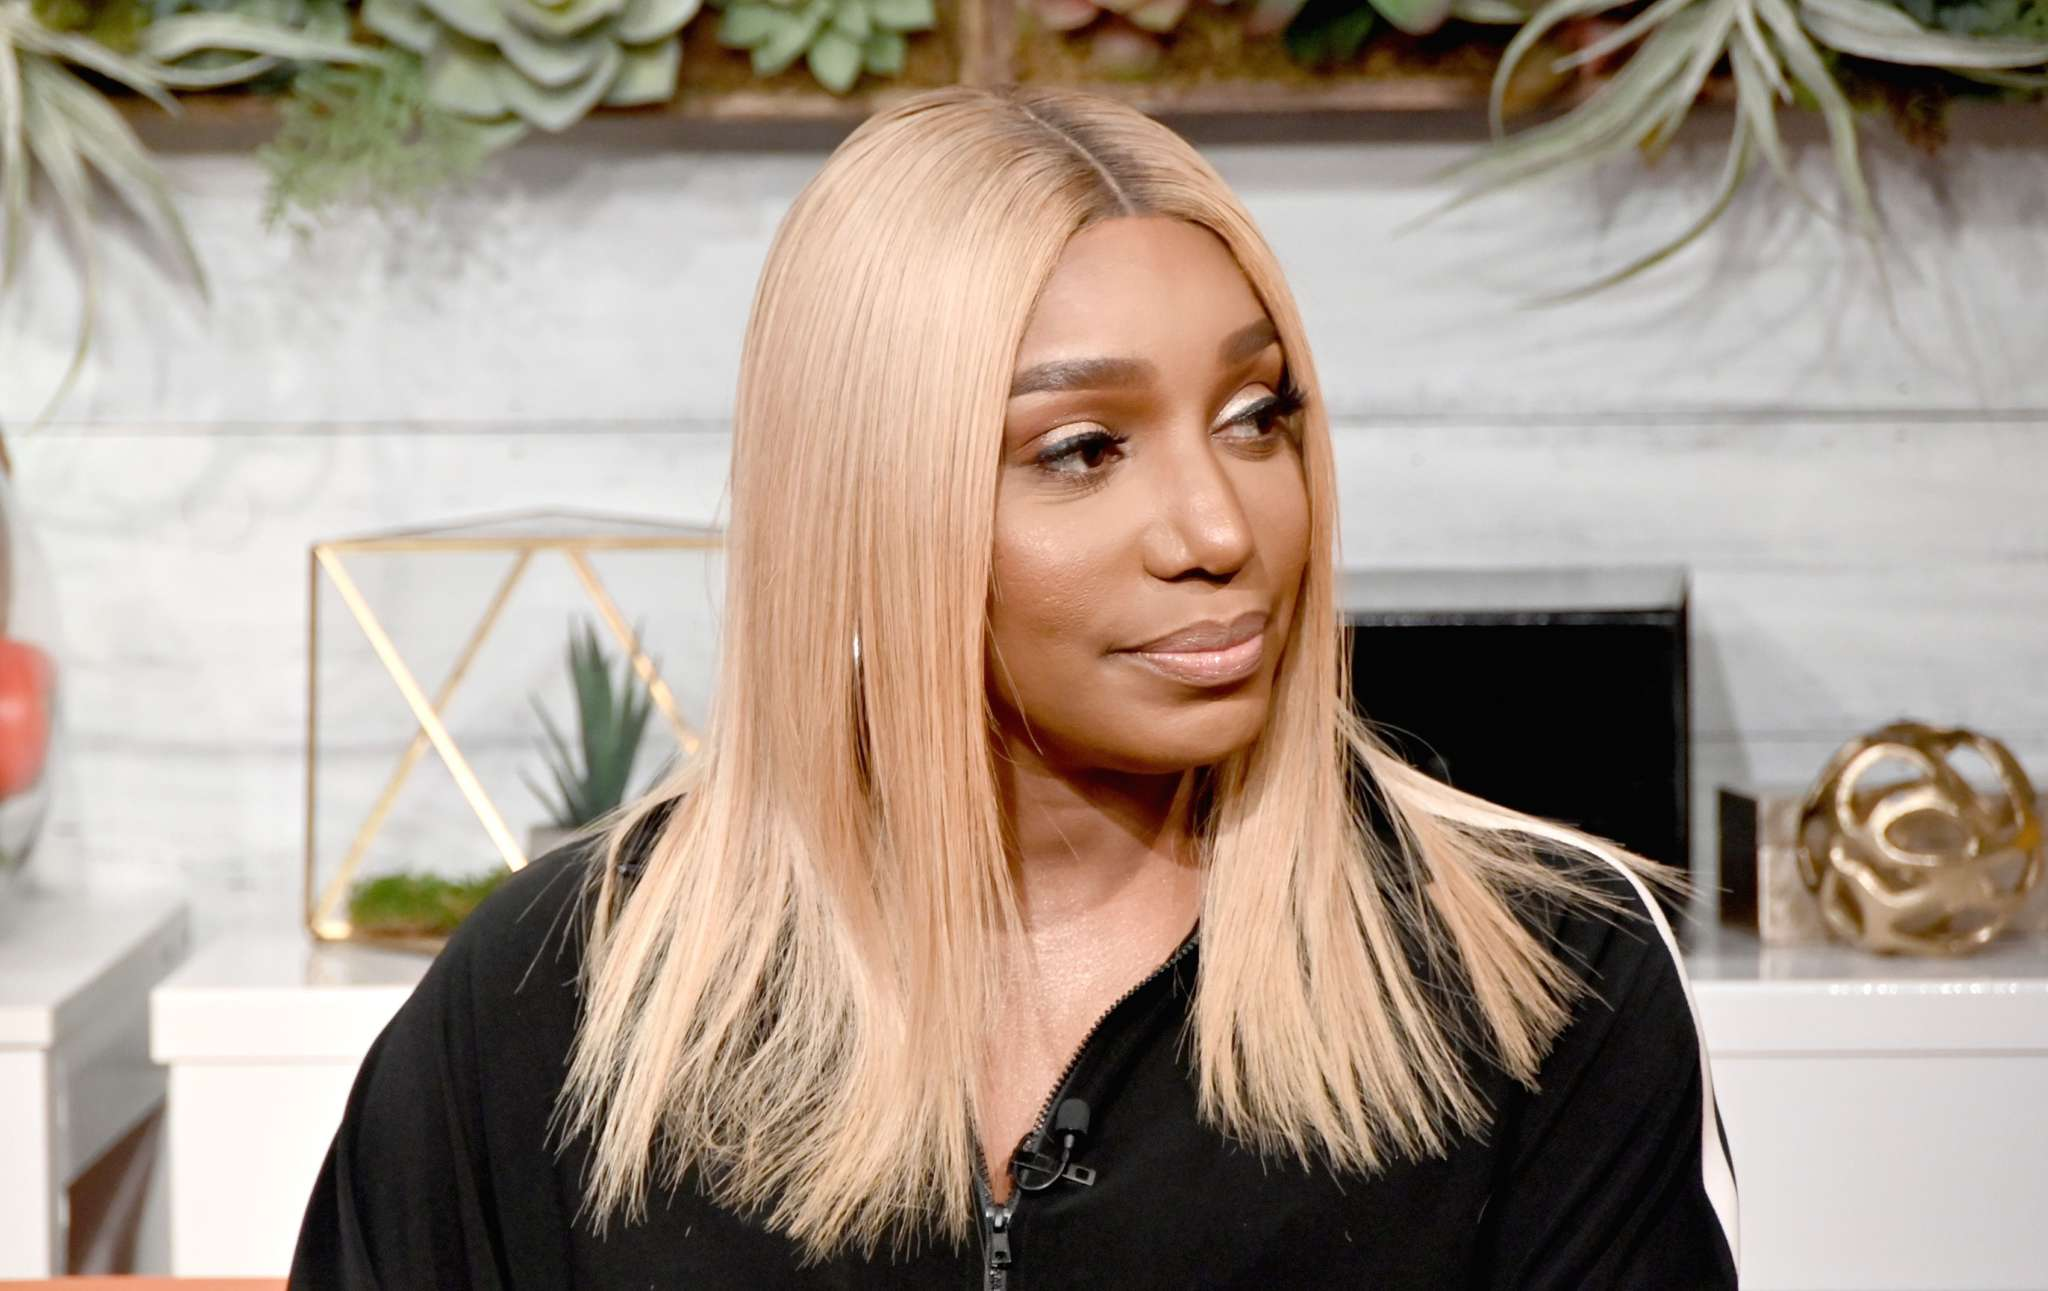 """nene-leakes-to-co-host-new-glam-show-what-does-that-mean-for-her-and-rhoa-as-shes-still-to-sign-the-contract"""